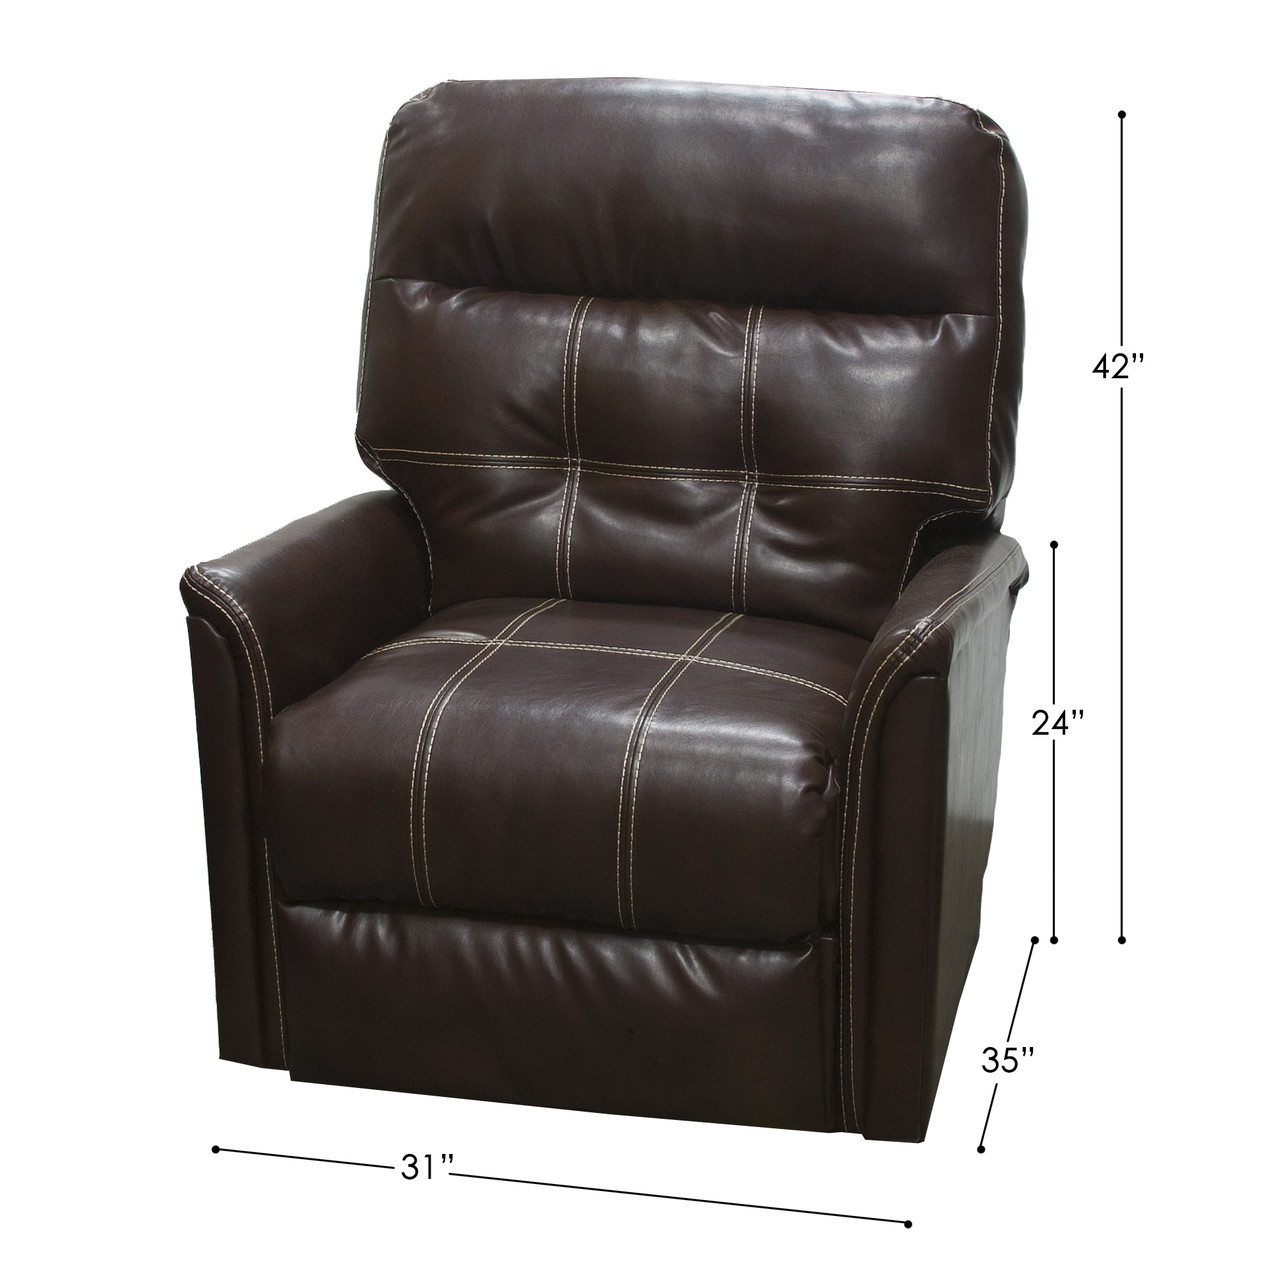 Fantastic Rocking Swivel Recliner Saddle Caraccident5 Cool Chair Designs And Ideas Caraccident5Info